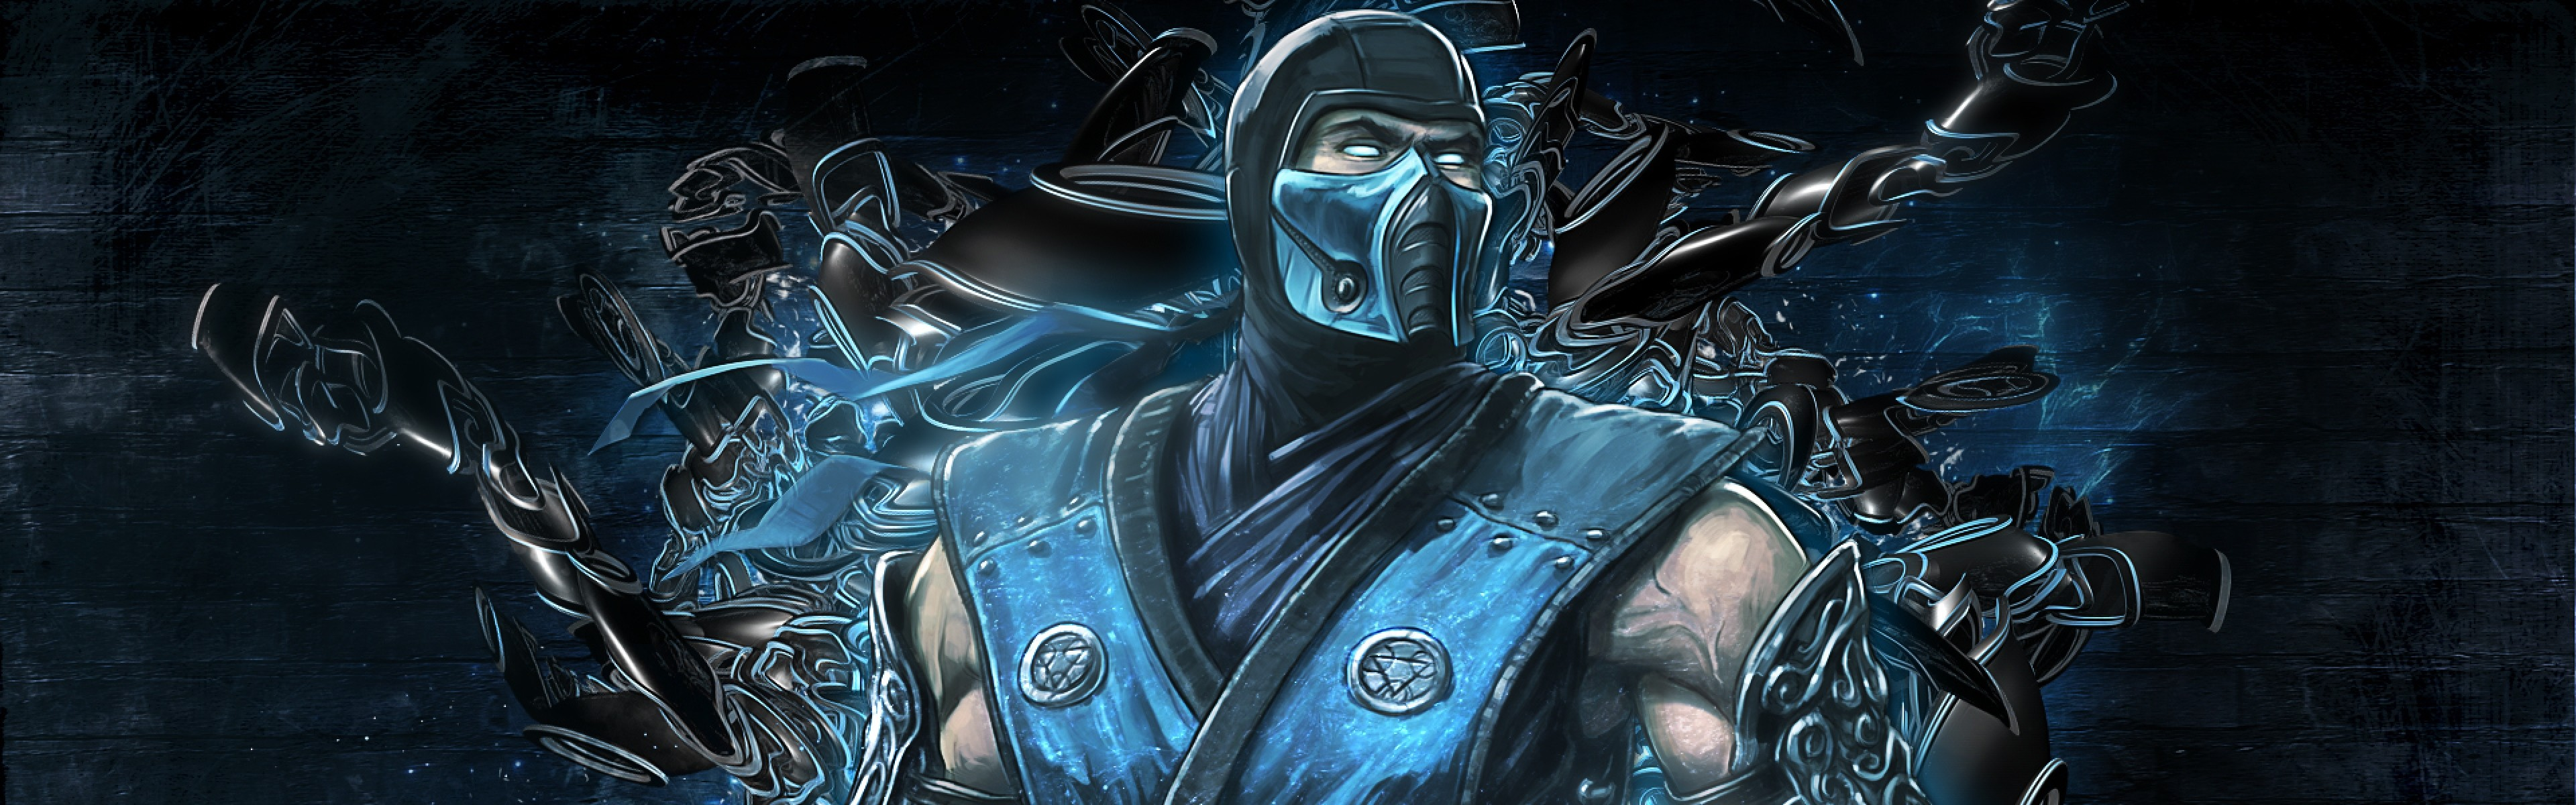 Mortal Kombat Sub Zero Wallpaper Find Best Latest Mortal Kombat